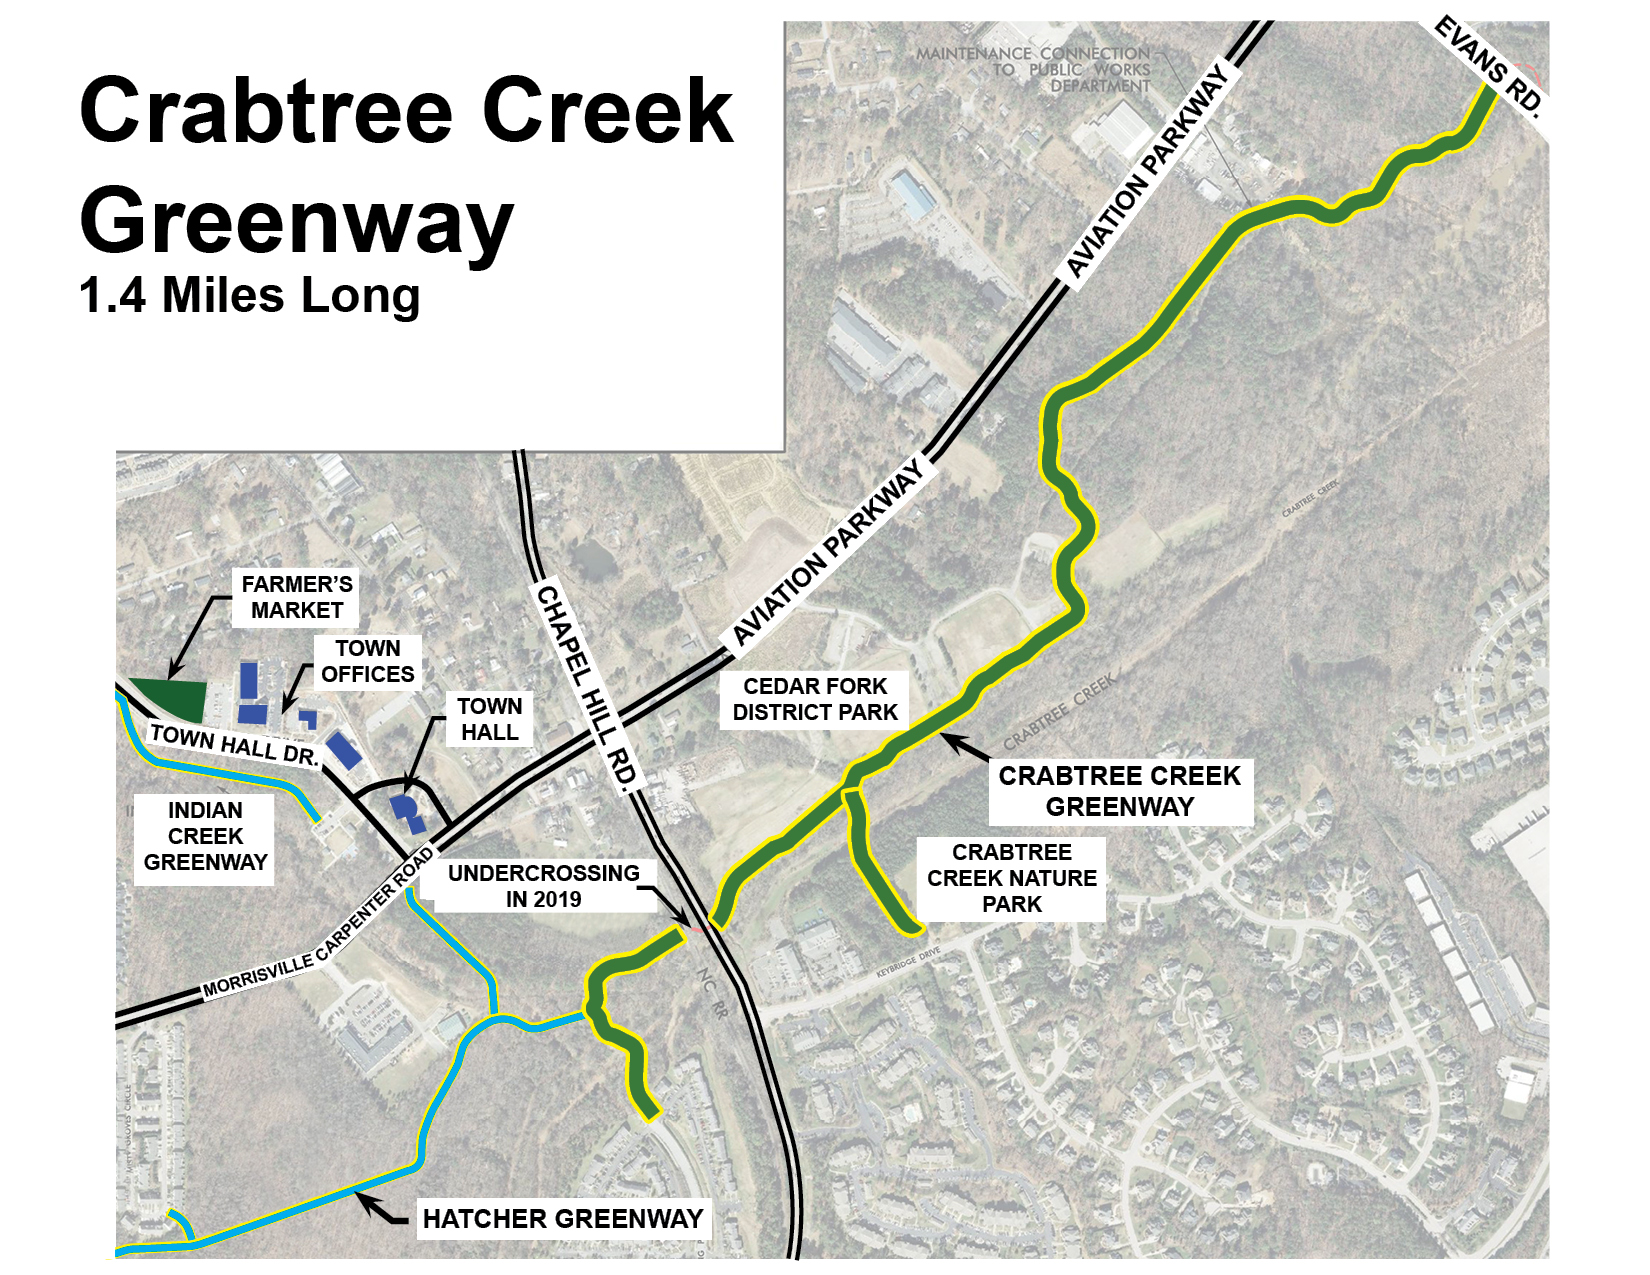 Crabtree Creek Greenway | Town of Morrisville, NC on